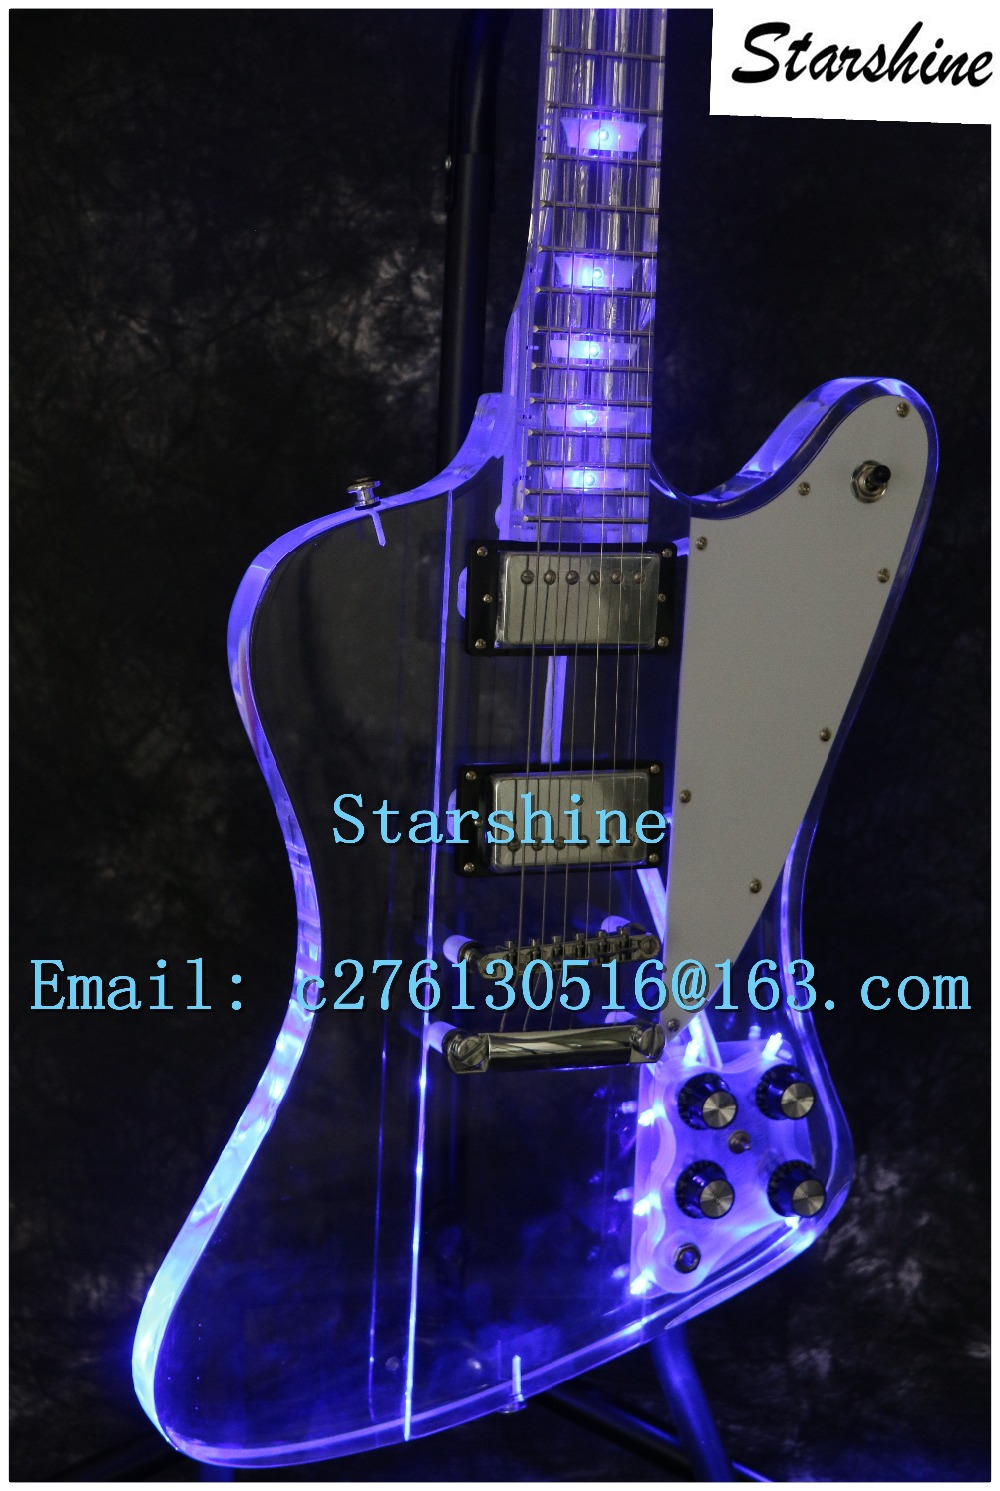 Instock Starshine SR-LBC-034 colorful crystal SR- firebird electric guitar led light body and neck full acrylic body and neck